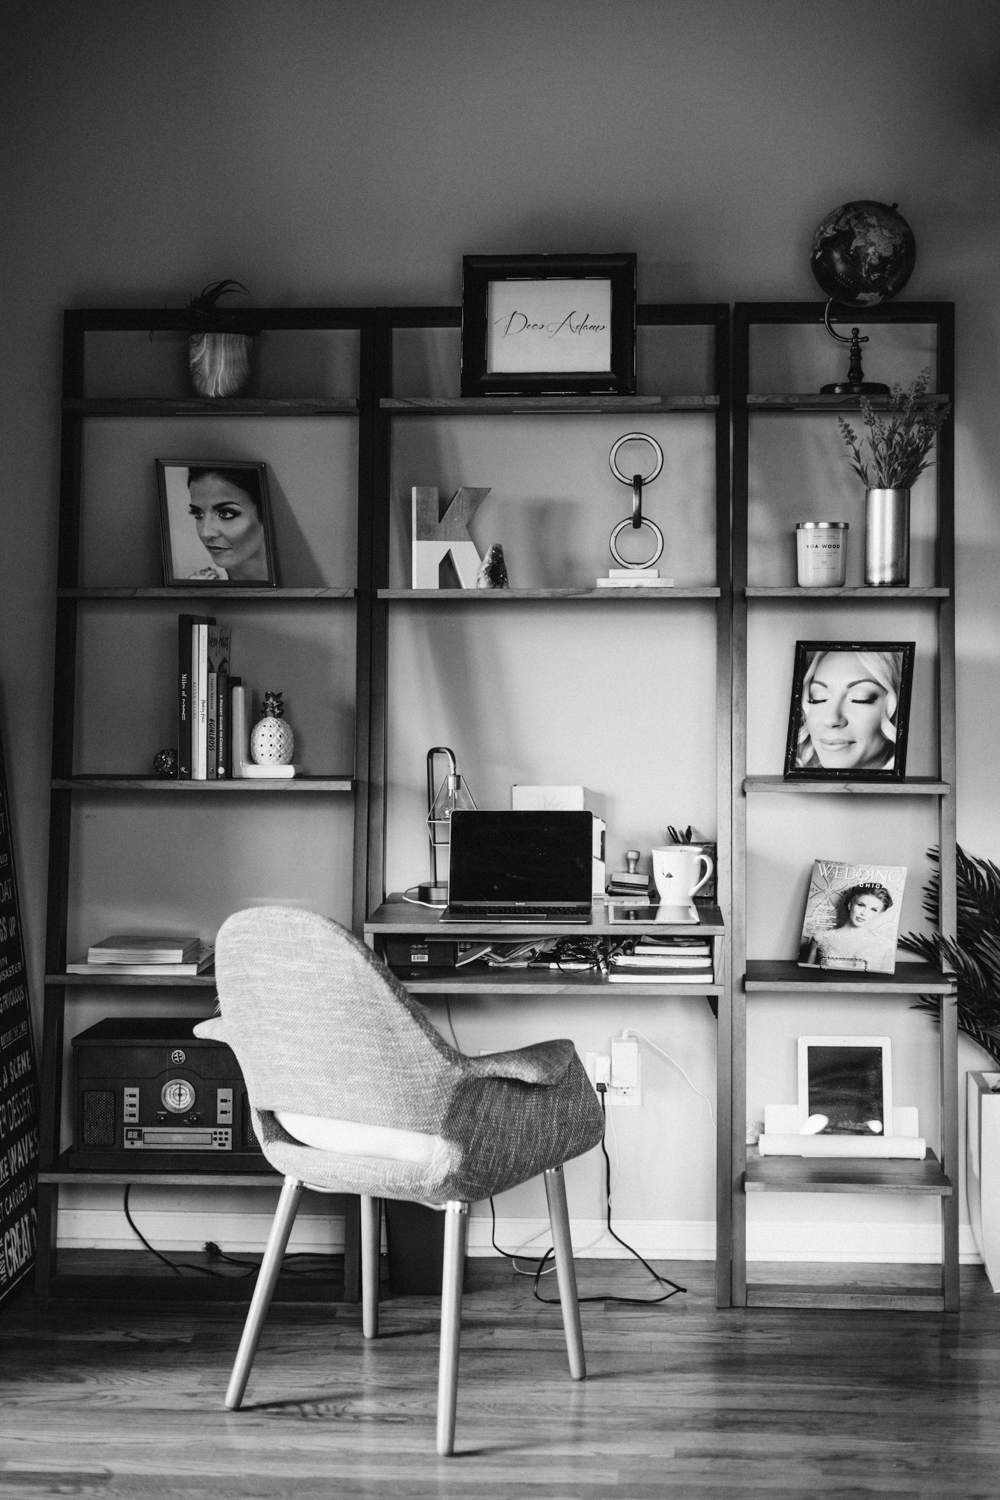 Deco Adamo home workspace in Chicago, photographed for feature series Inspired Chicago that interviews local creative women